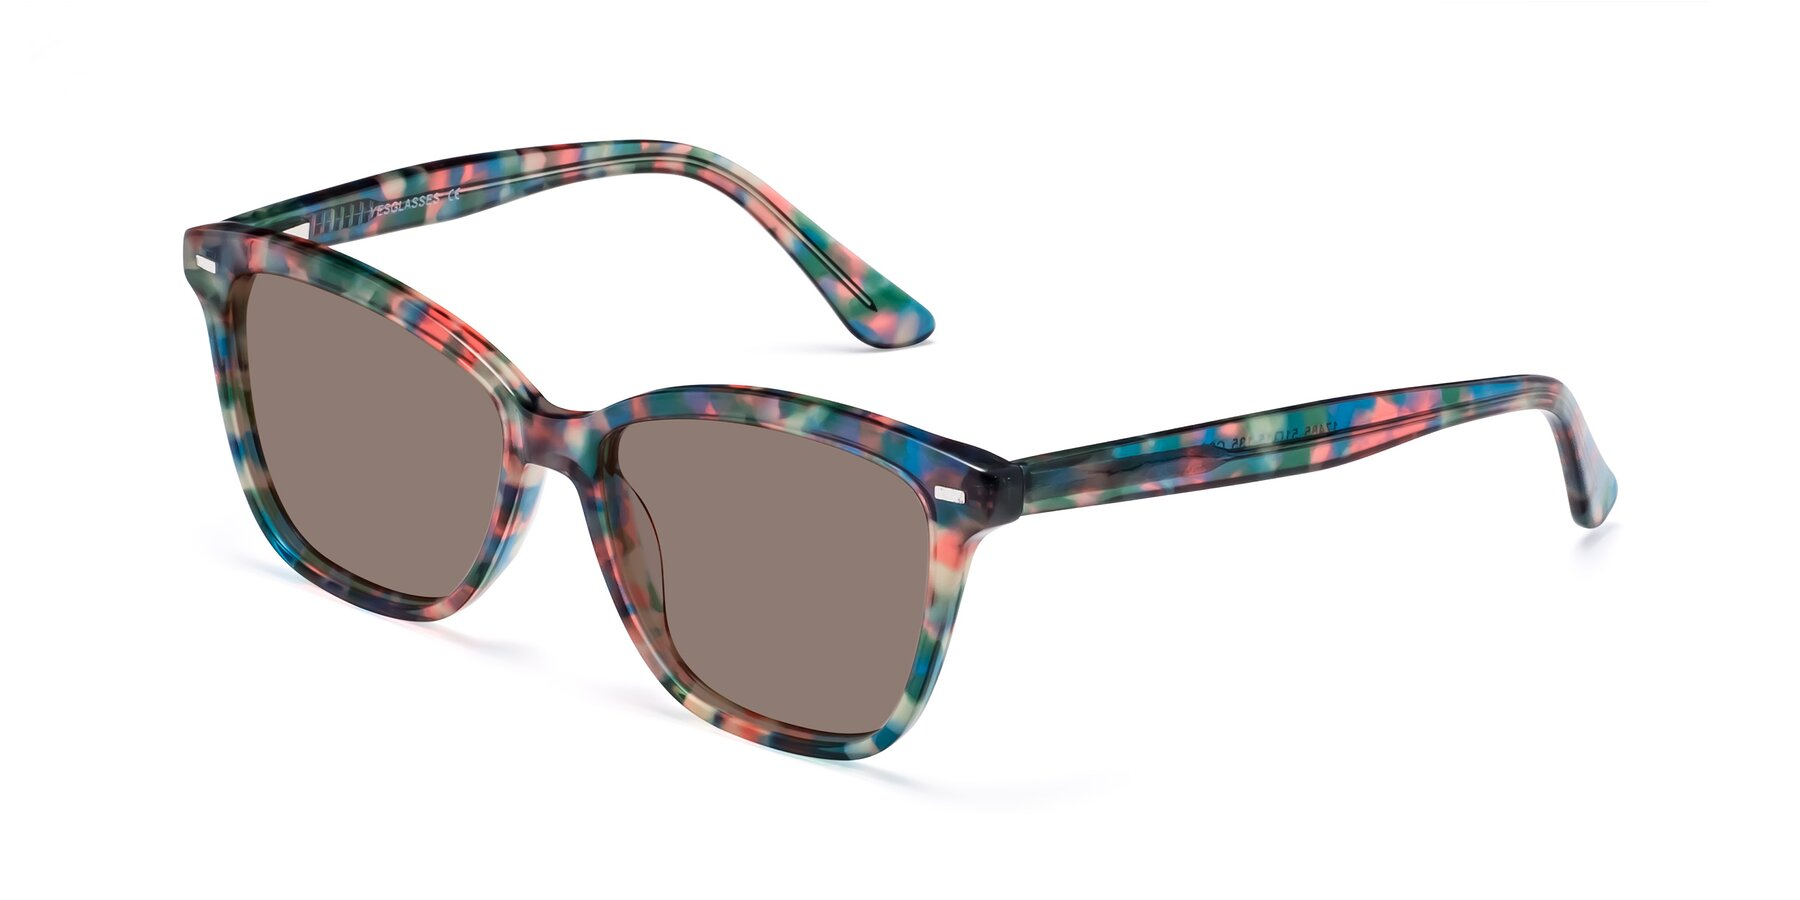 Angle of 17485 in Floral Tortoise with Medium Brown Tinted Lenses